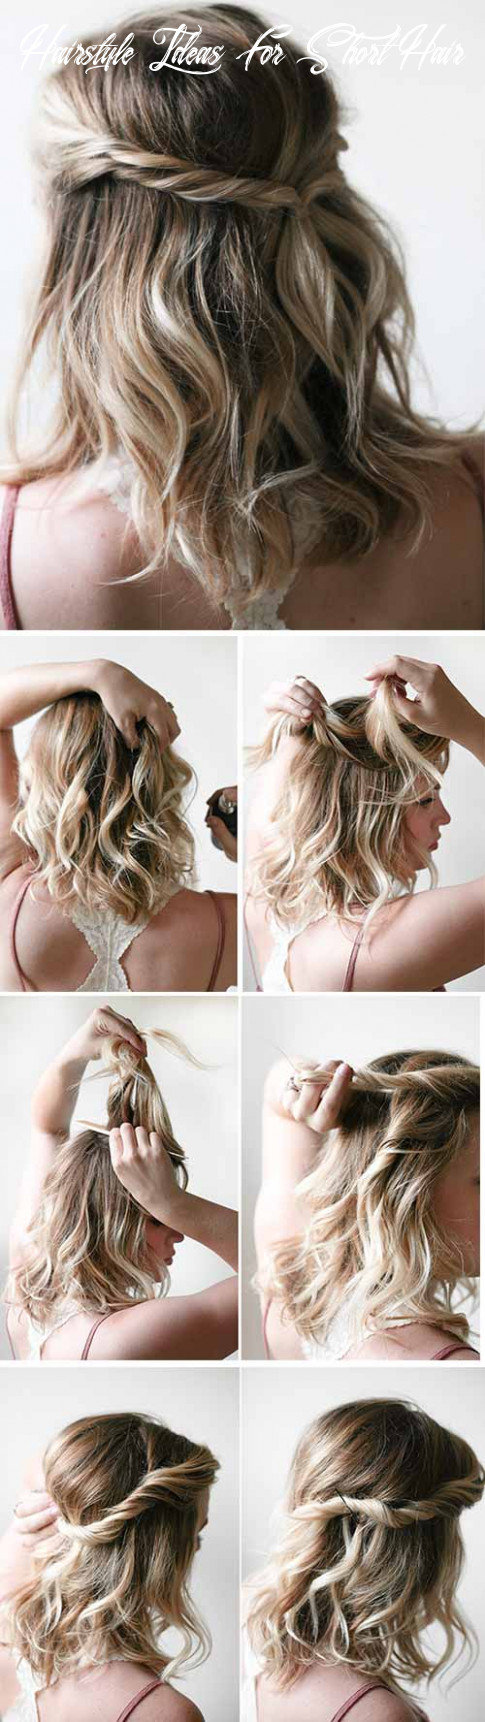 11 incredible diy short hairstyles a step by step guide hairstyle ideas for short hair